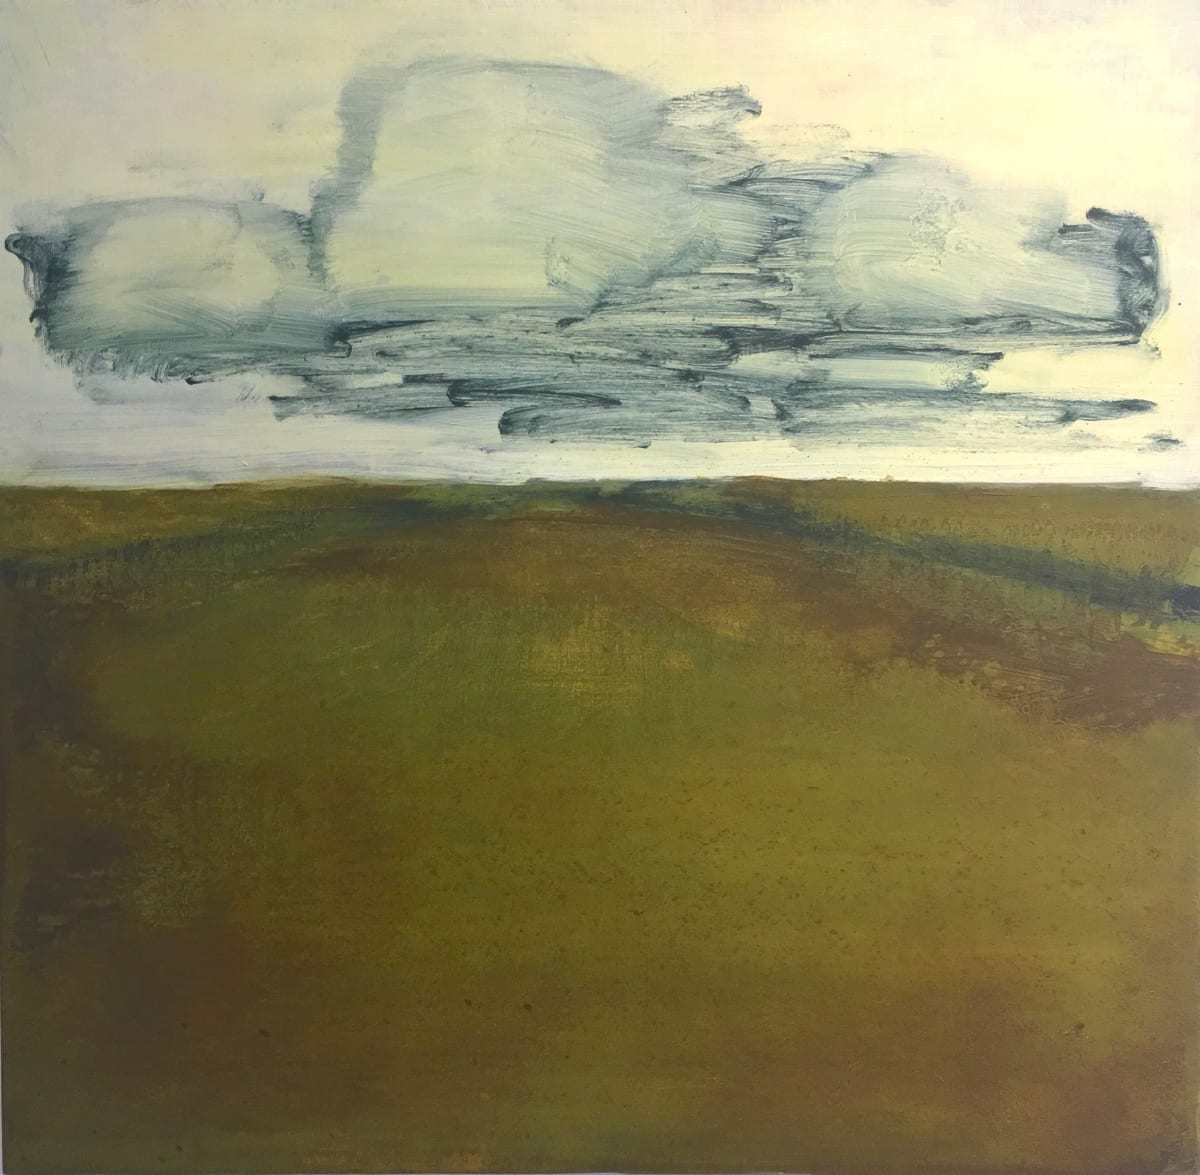 David Konigsberg, Hayfield, 2019